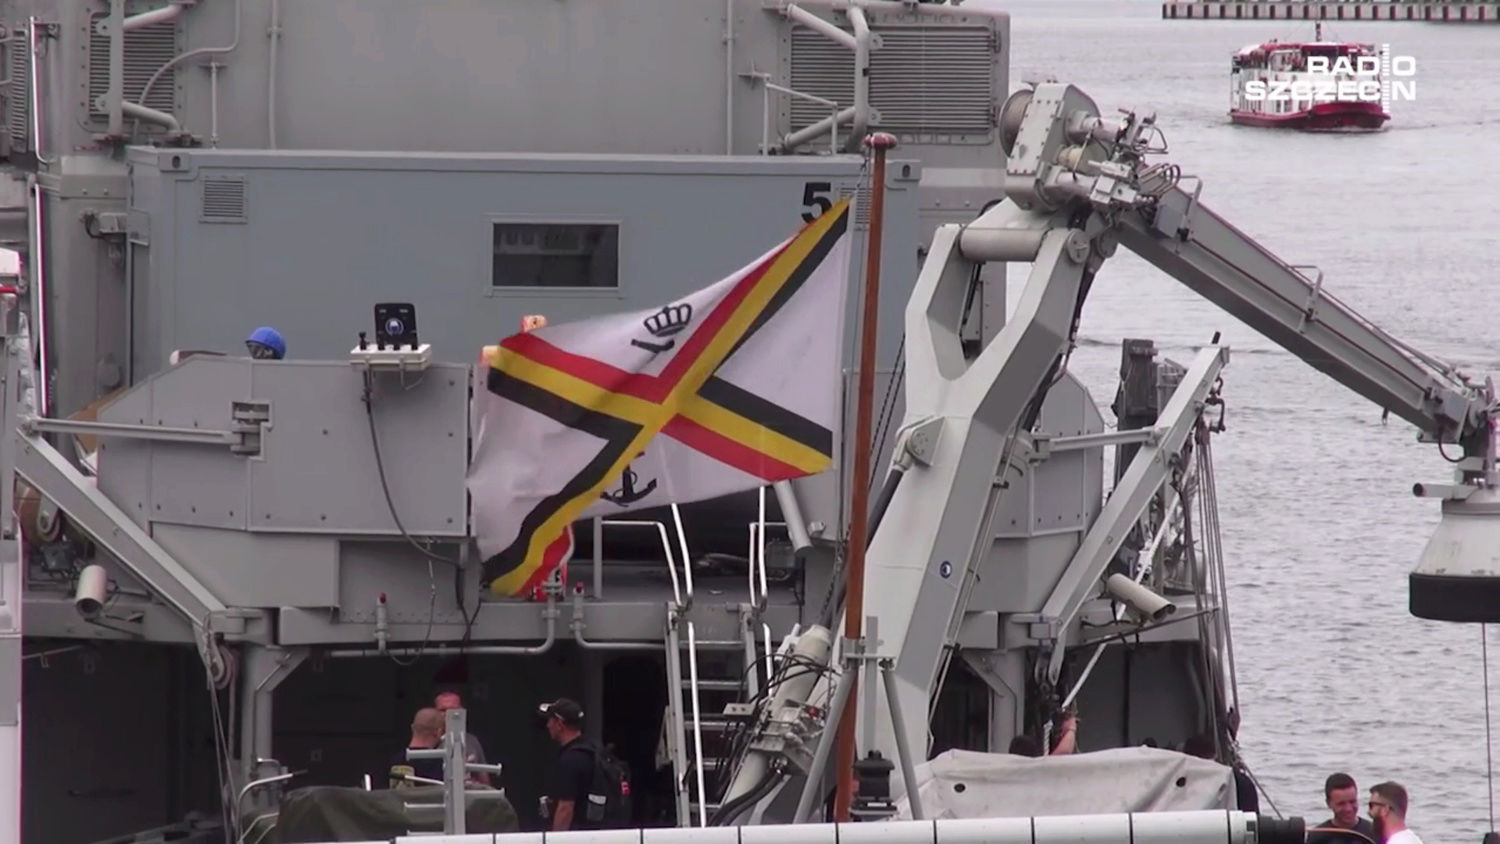 3 navires belges prendront part à l'exercice BALTOPS 2017 - Page 2 Aaaa310